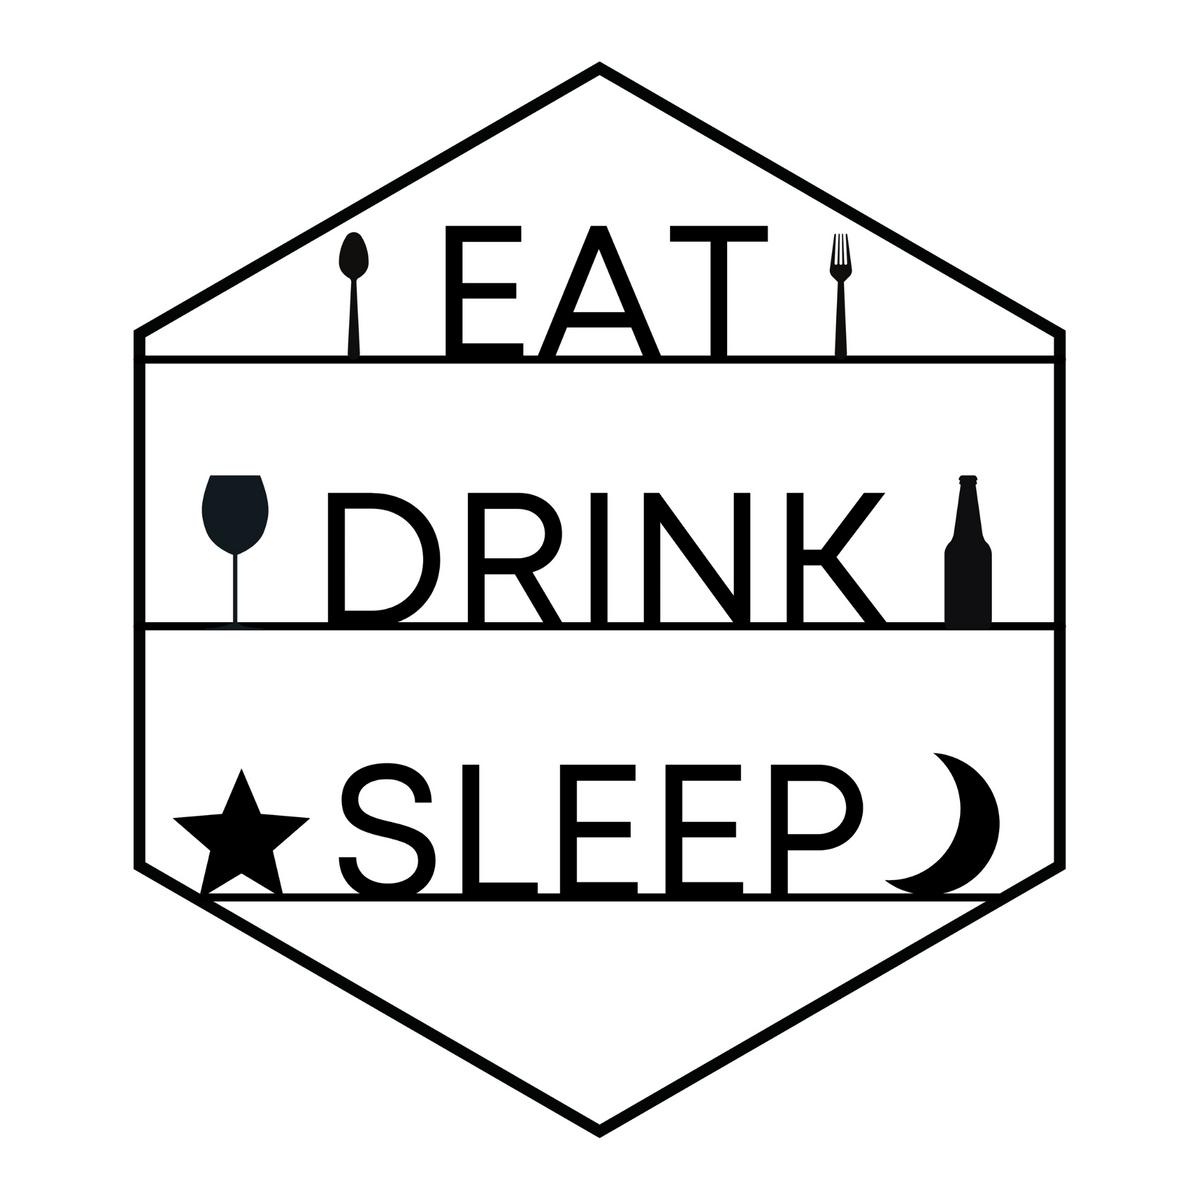 Hexagon Eat - Drink - Sleep Sign